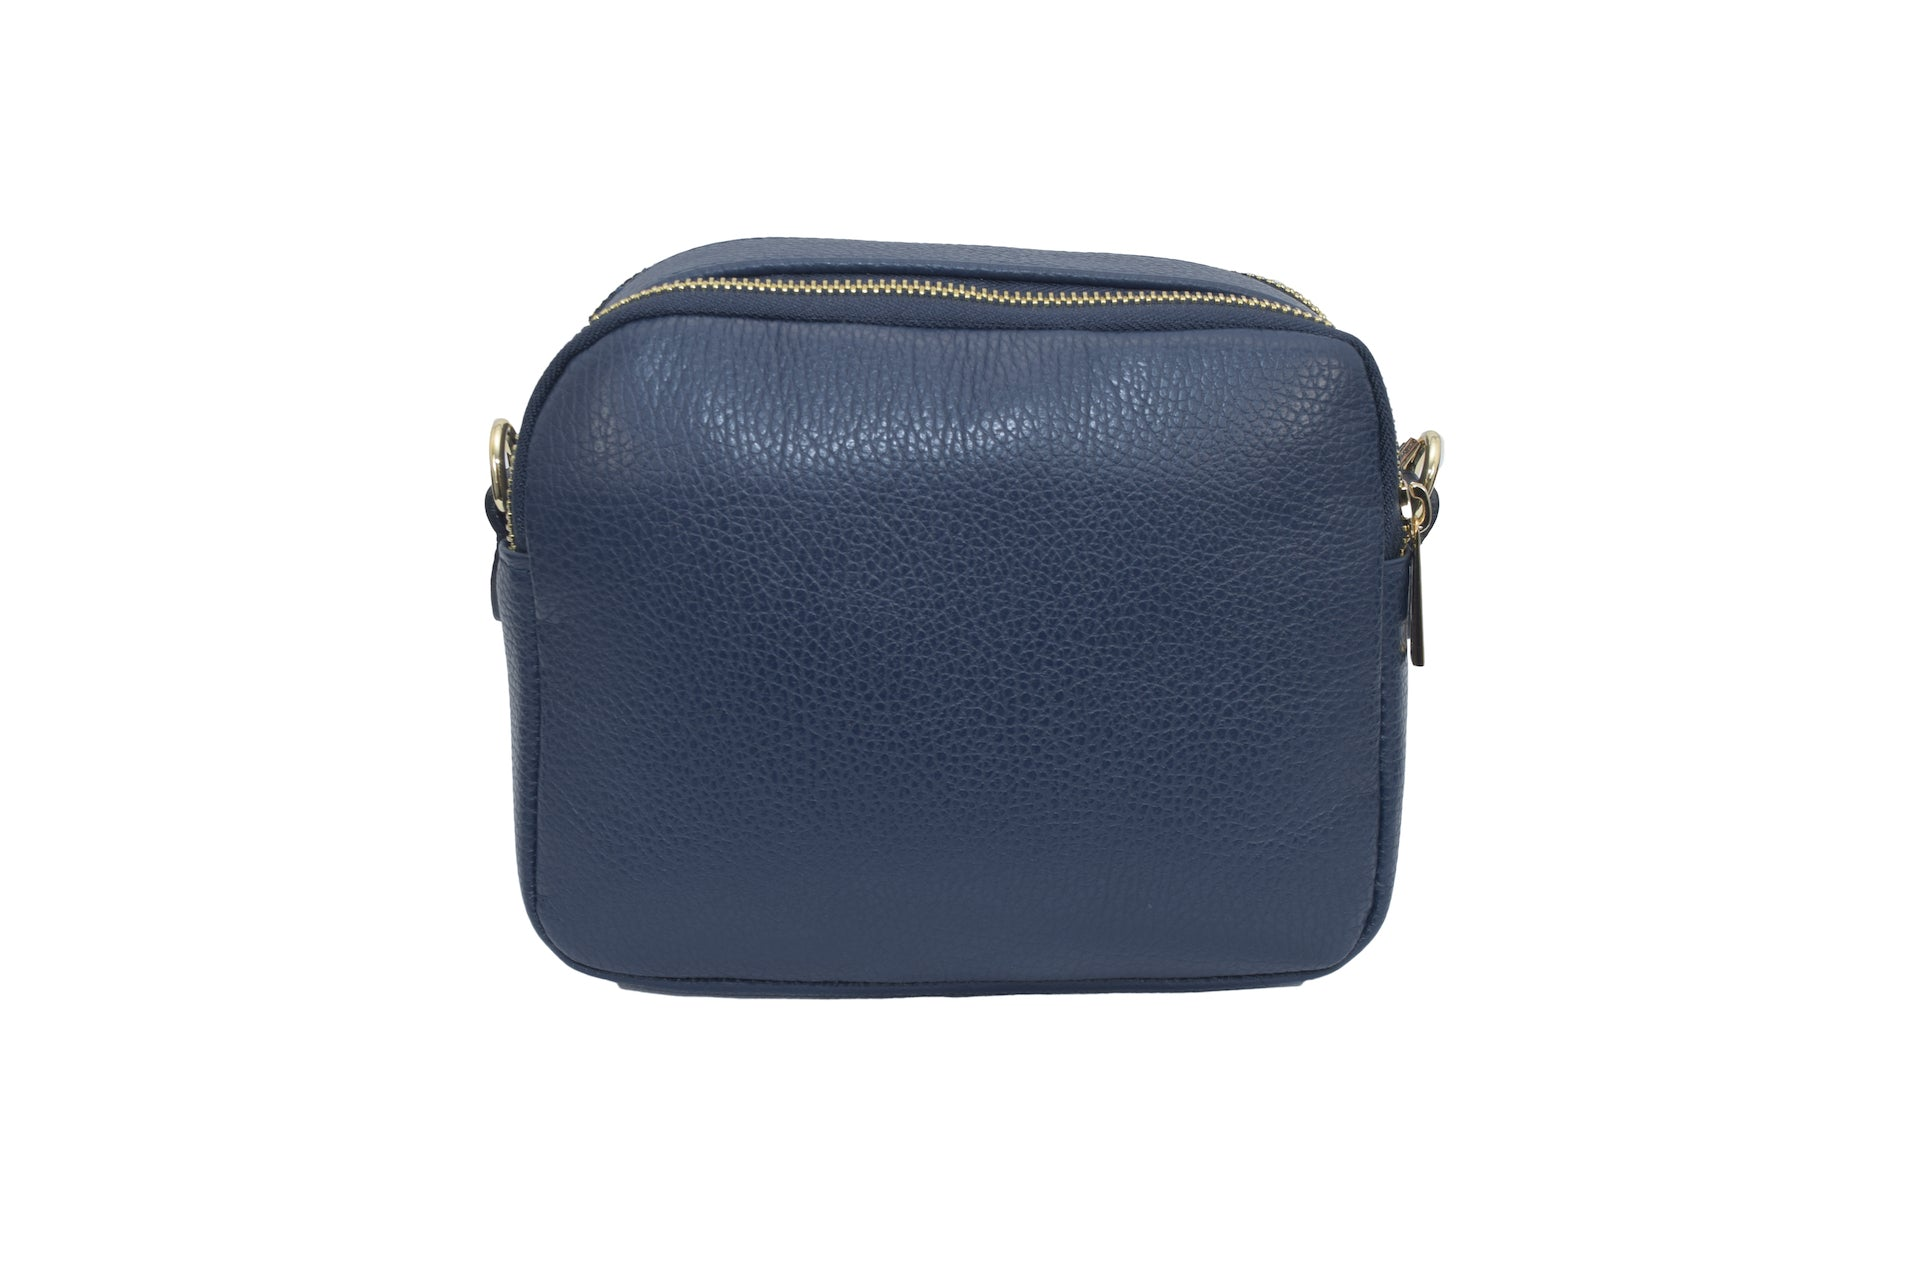 Navy Blue real soft leather compact cross body bag with leather travel card slip pocket and double zip closure